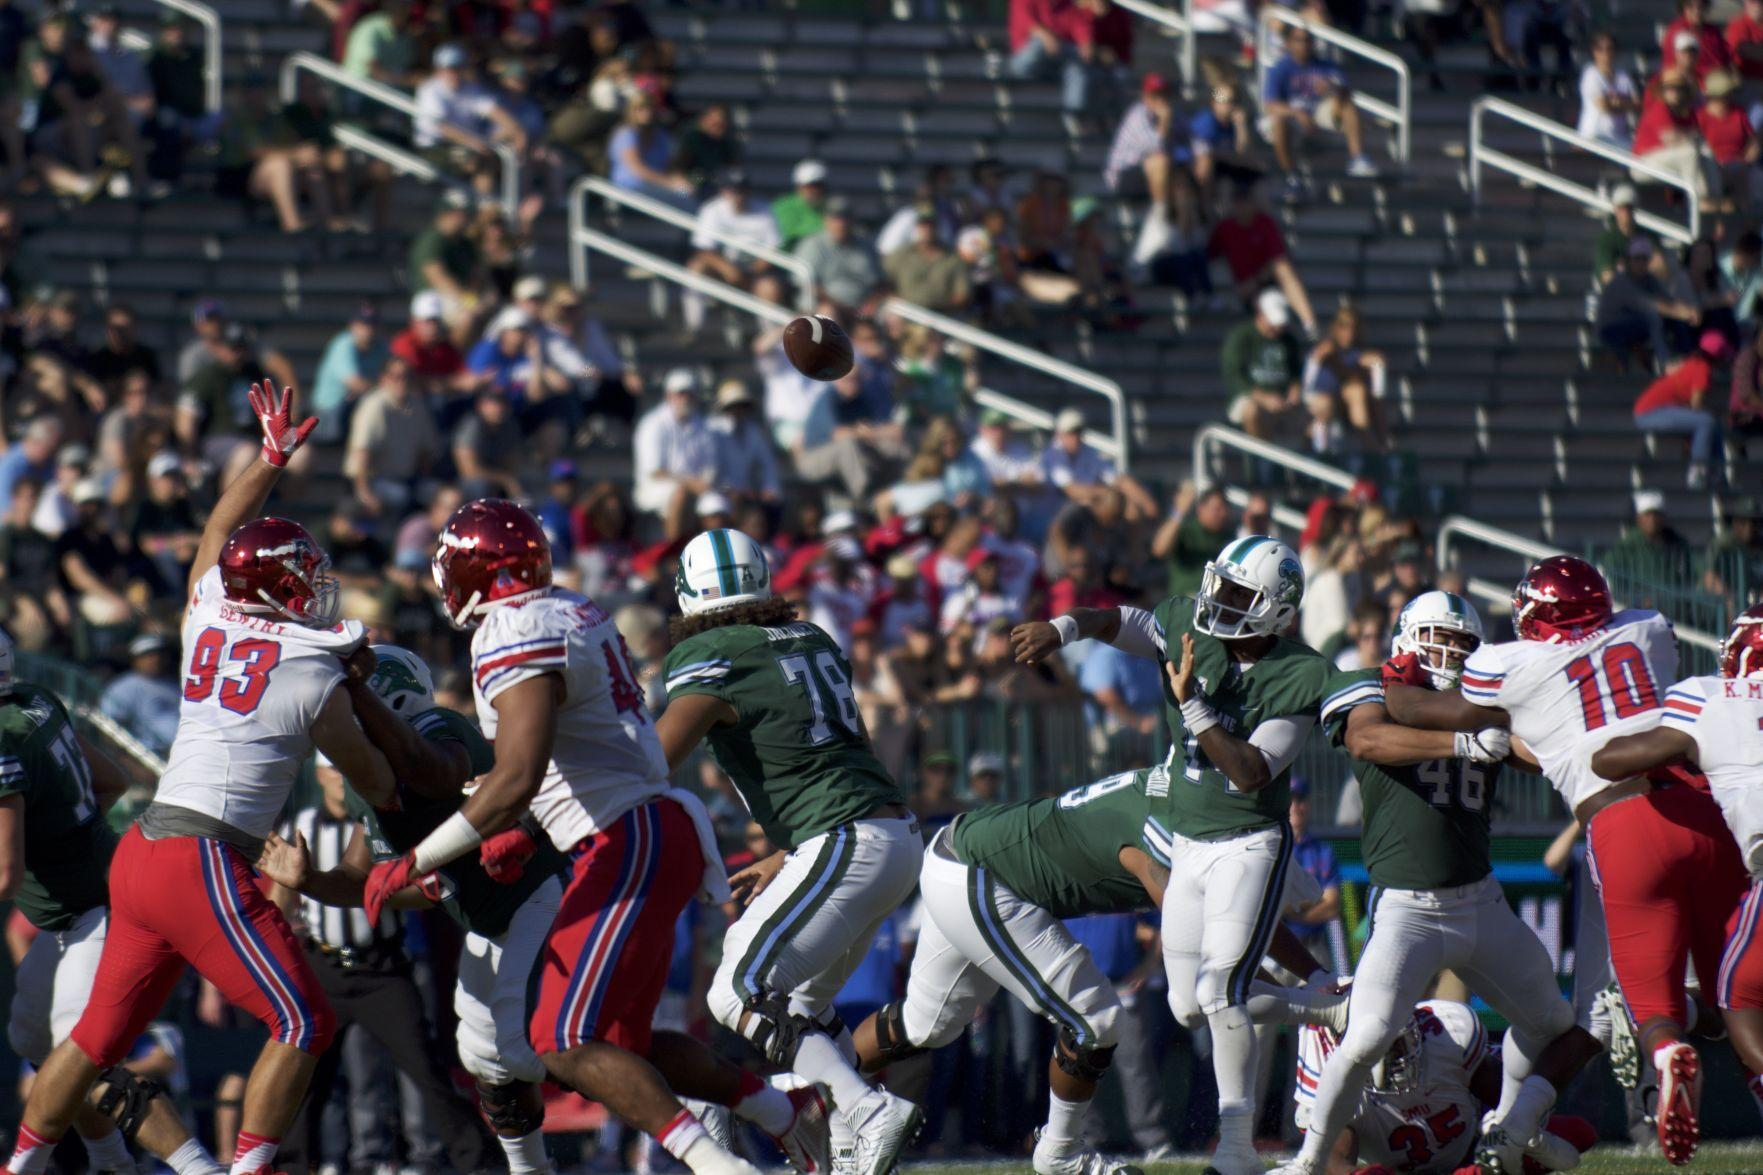 Sophomore quarterback Glen Cuiellette makes a play in the Green Wave's game against SMU.